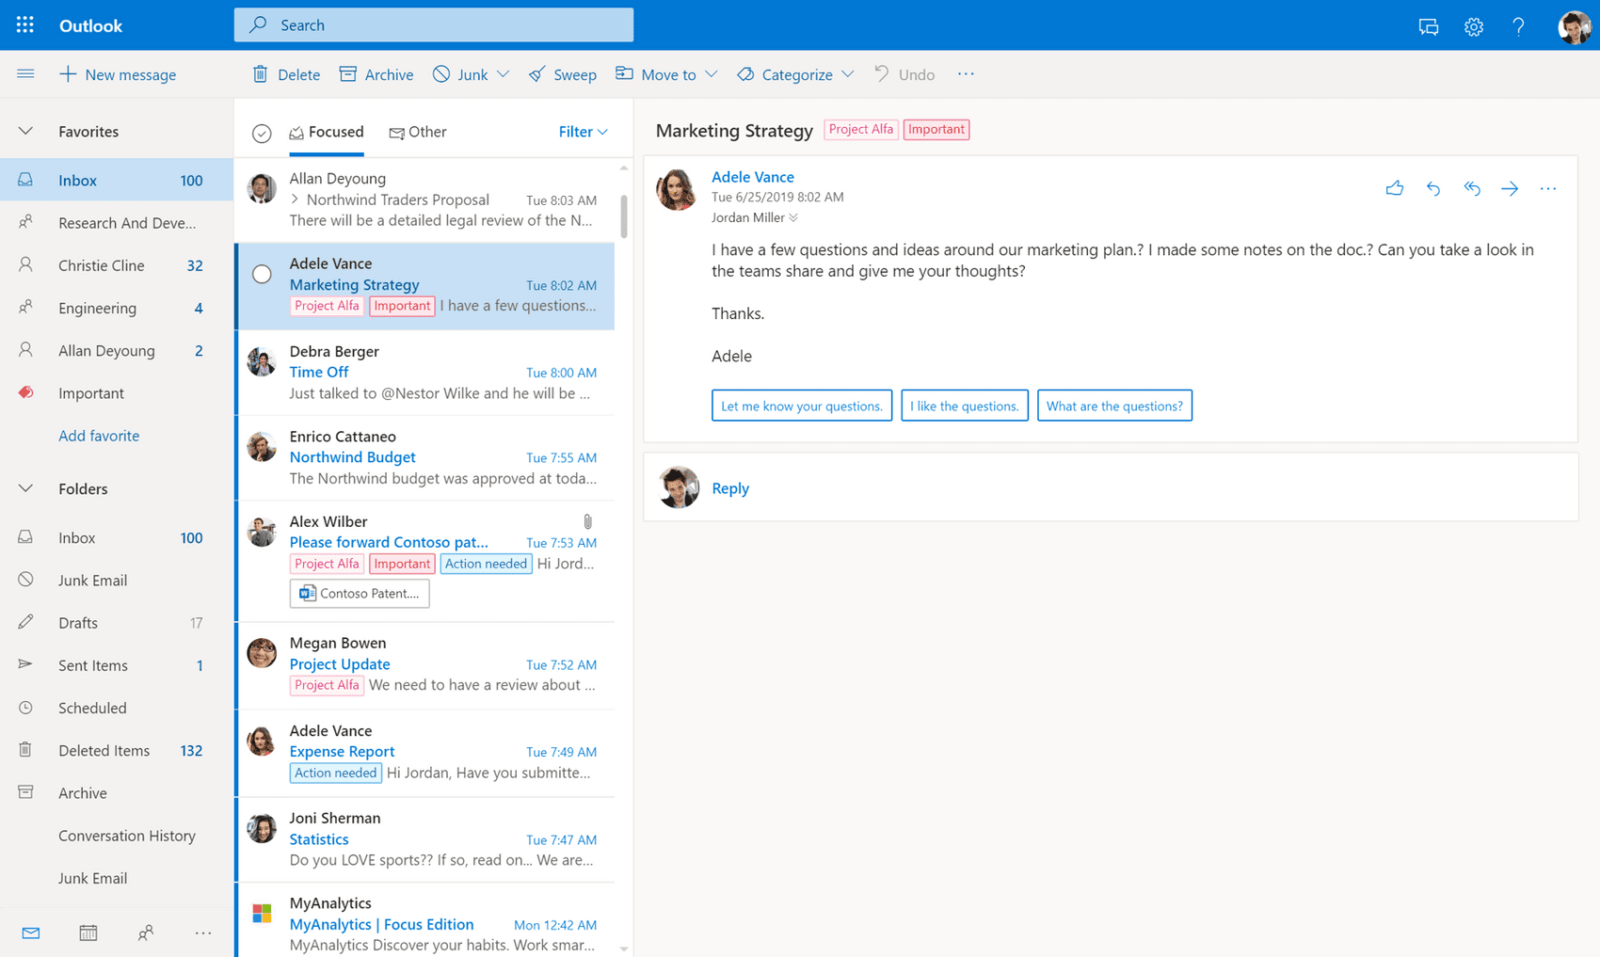 Microsoft launches the new Outlook.com officially